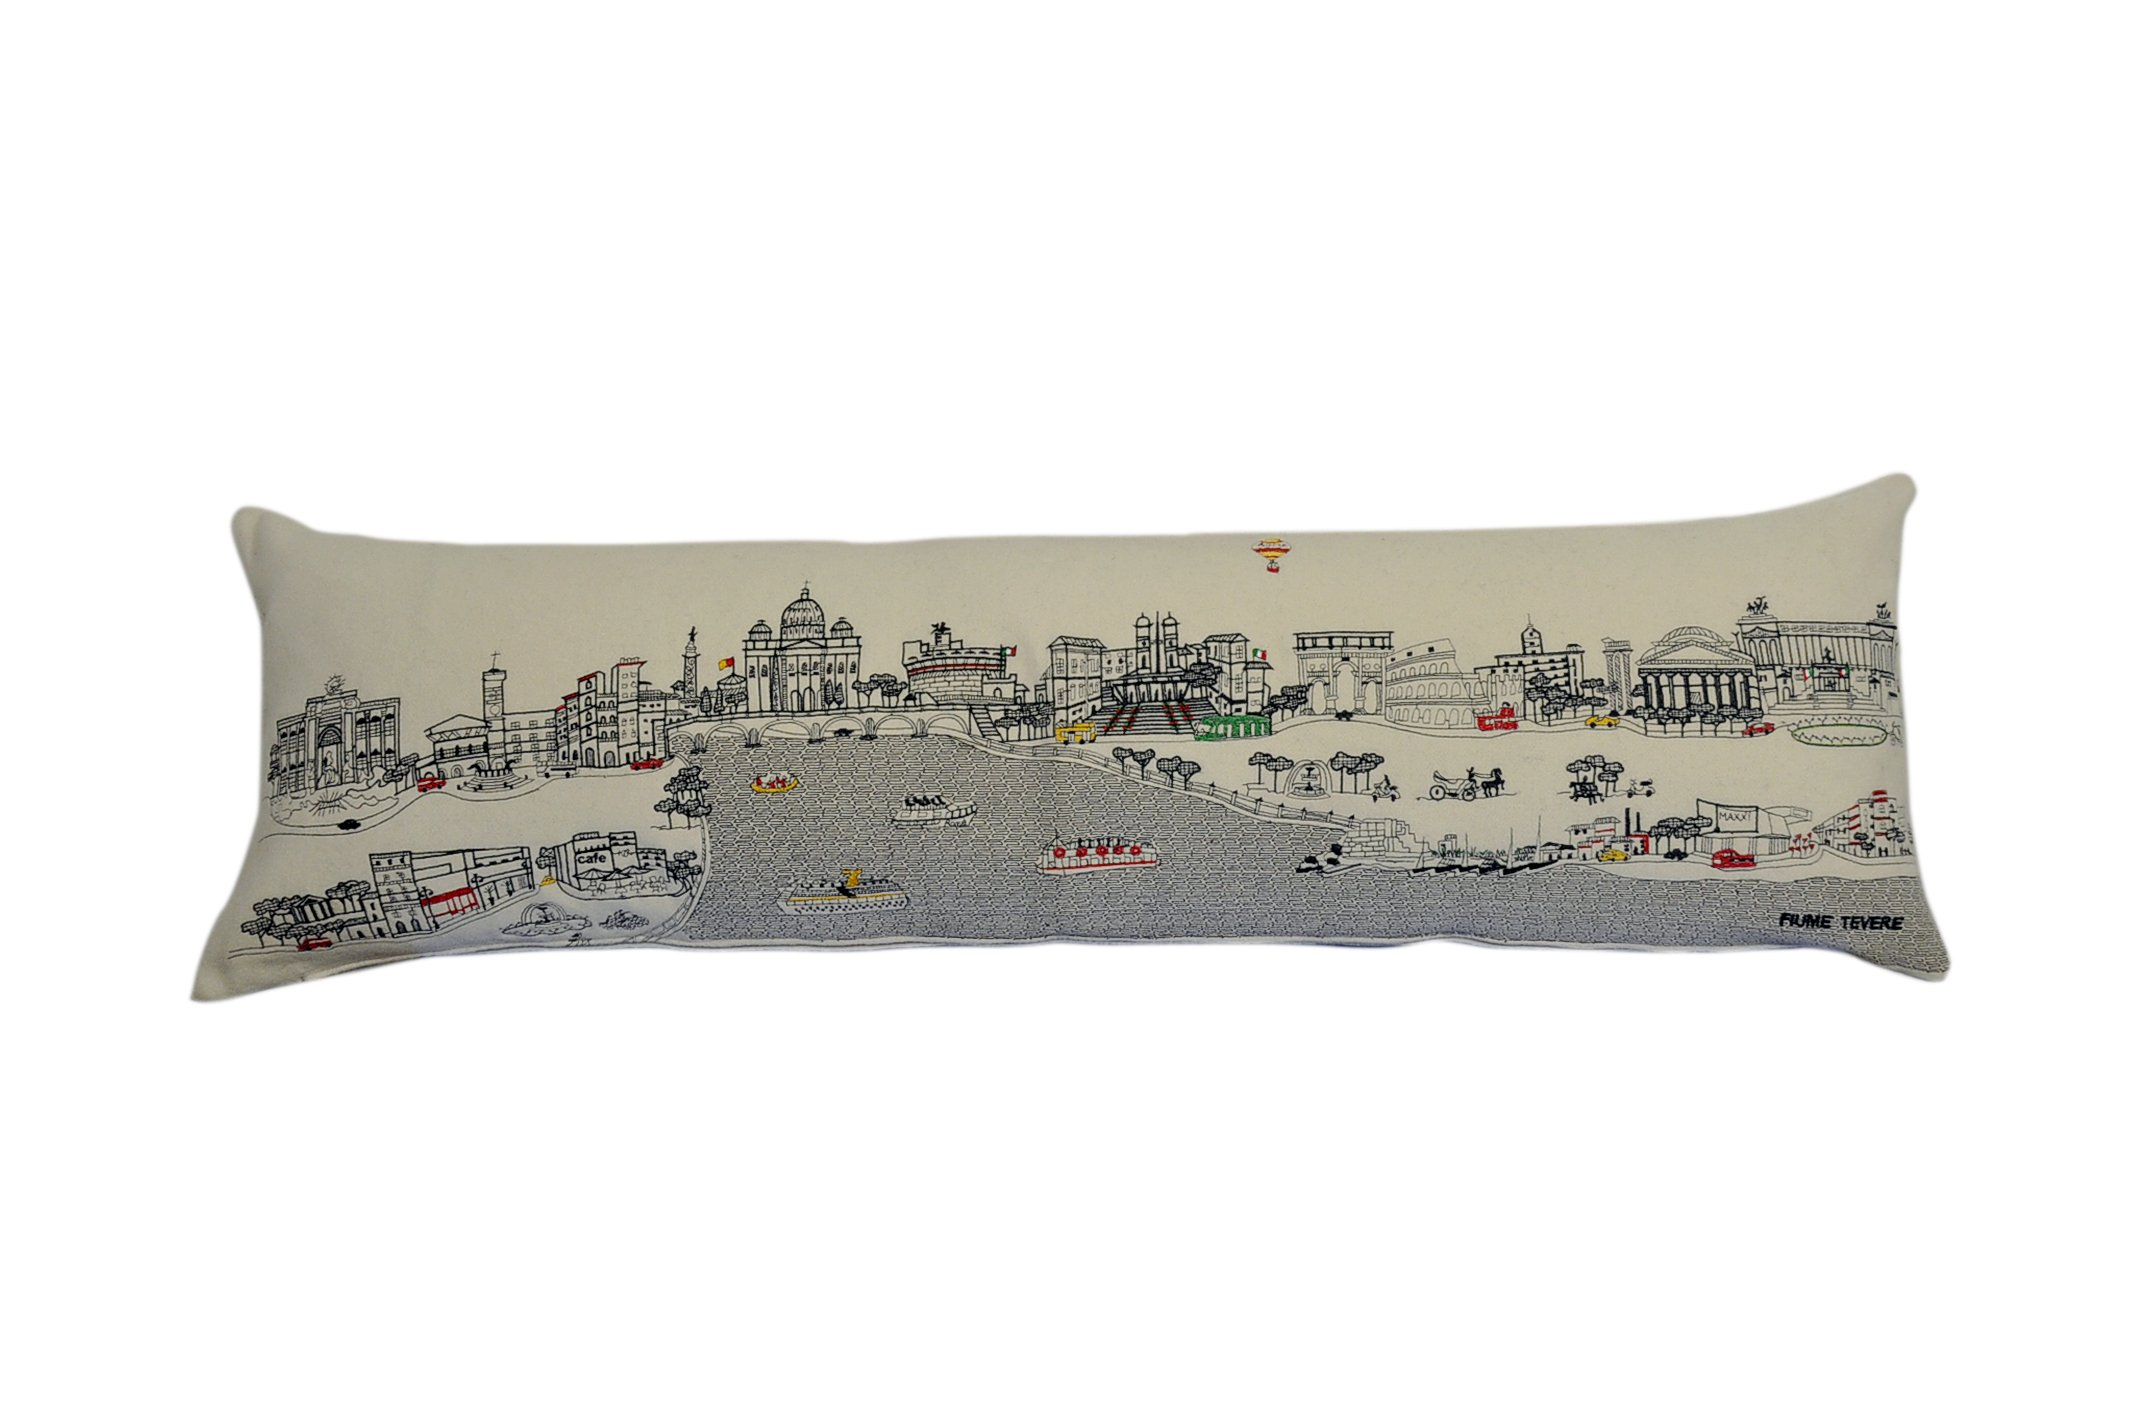 Beyond Cushions Polyester Throw Pillows Beyond Cushions Rome, Italy Daytime Skyline King Size Embroidered Accent Pillow 46 X 14 X 5 Inches Off-White